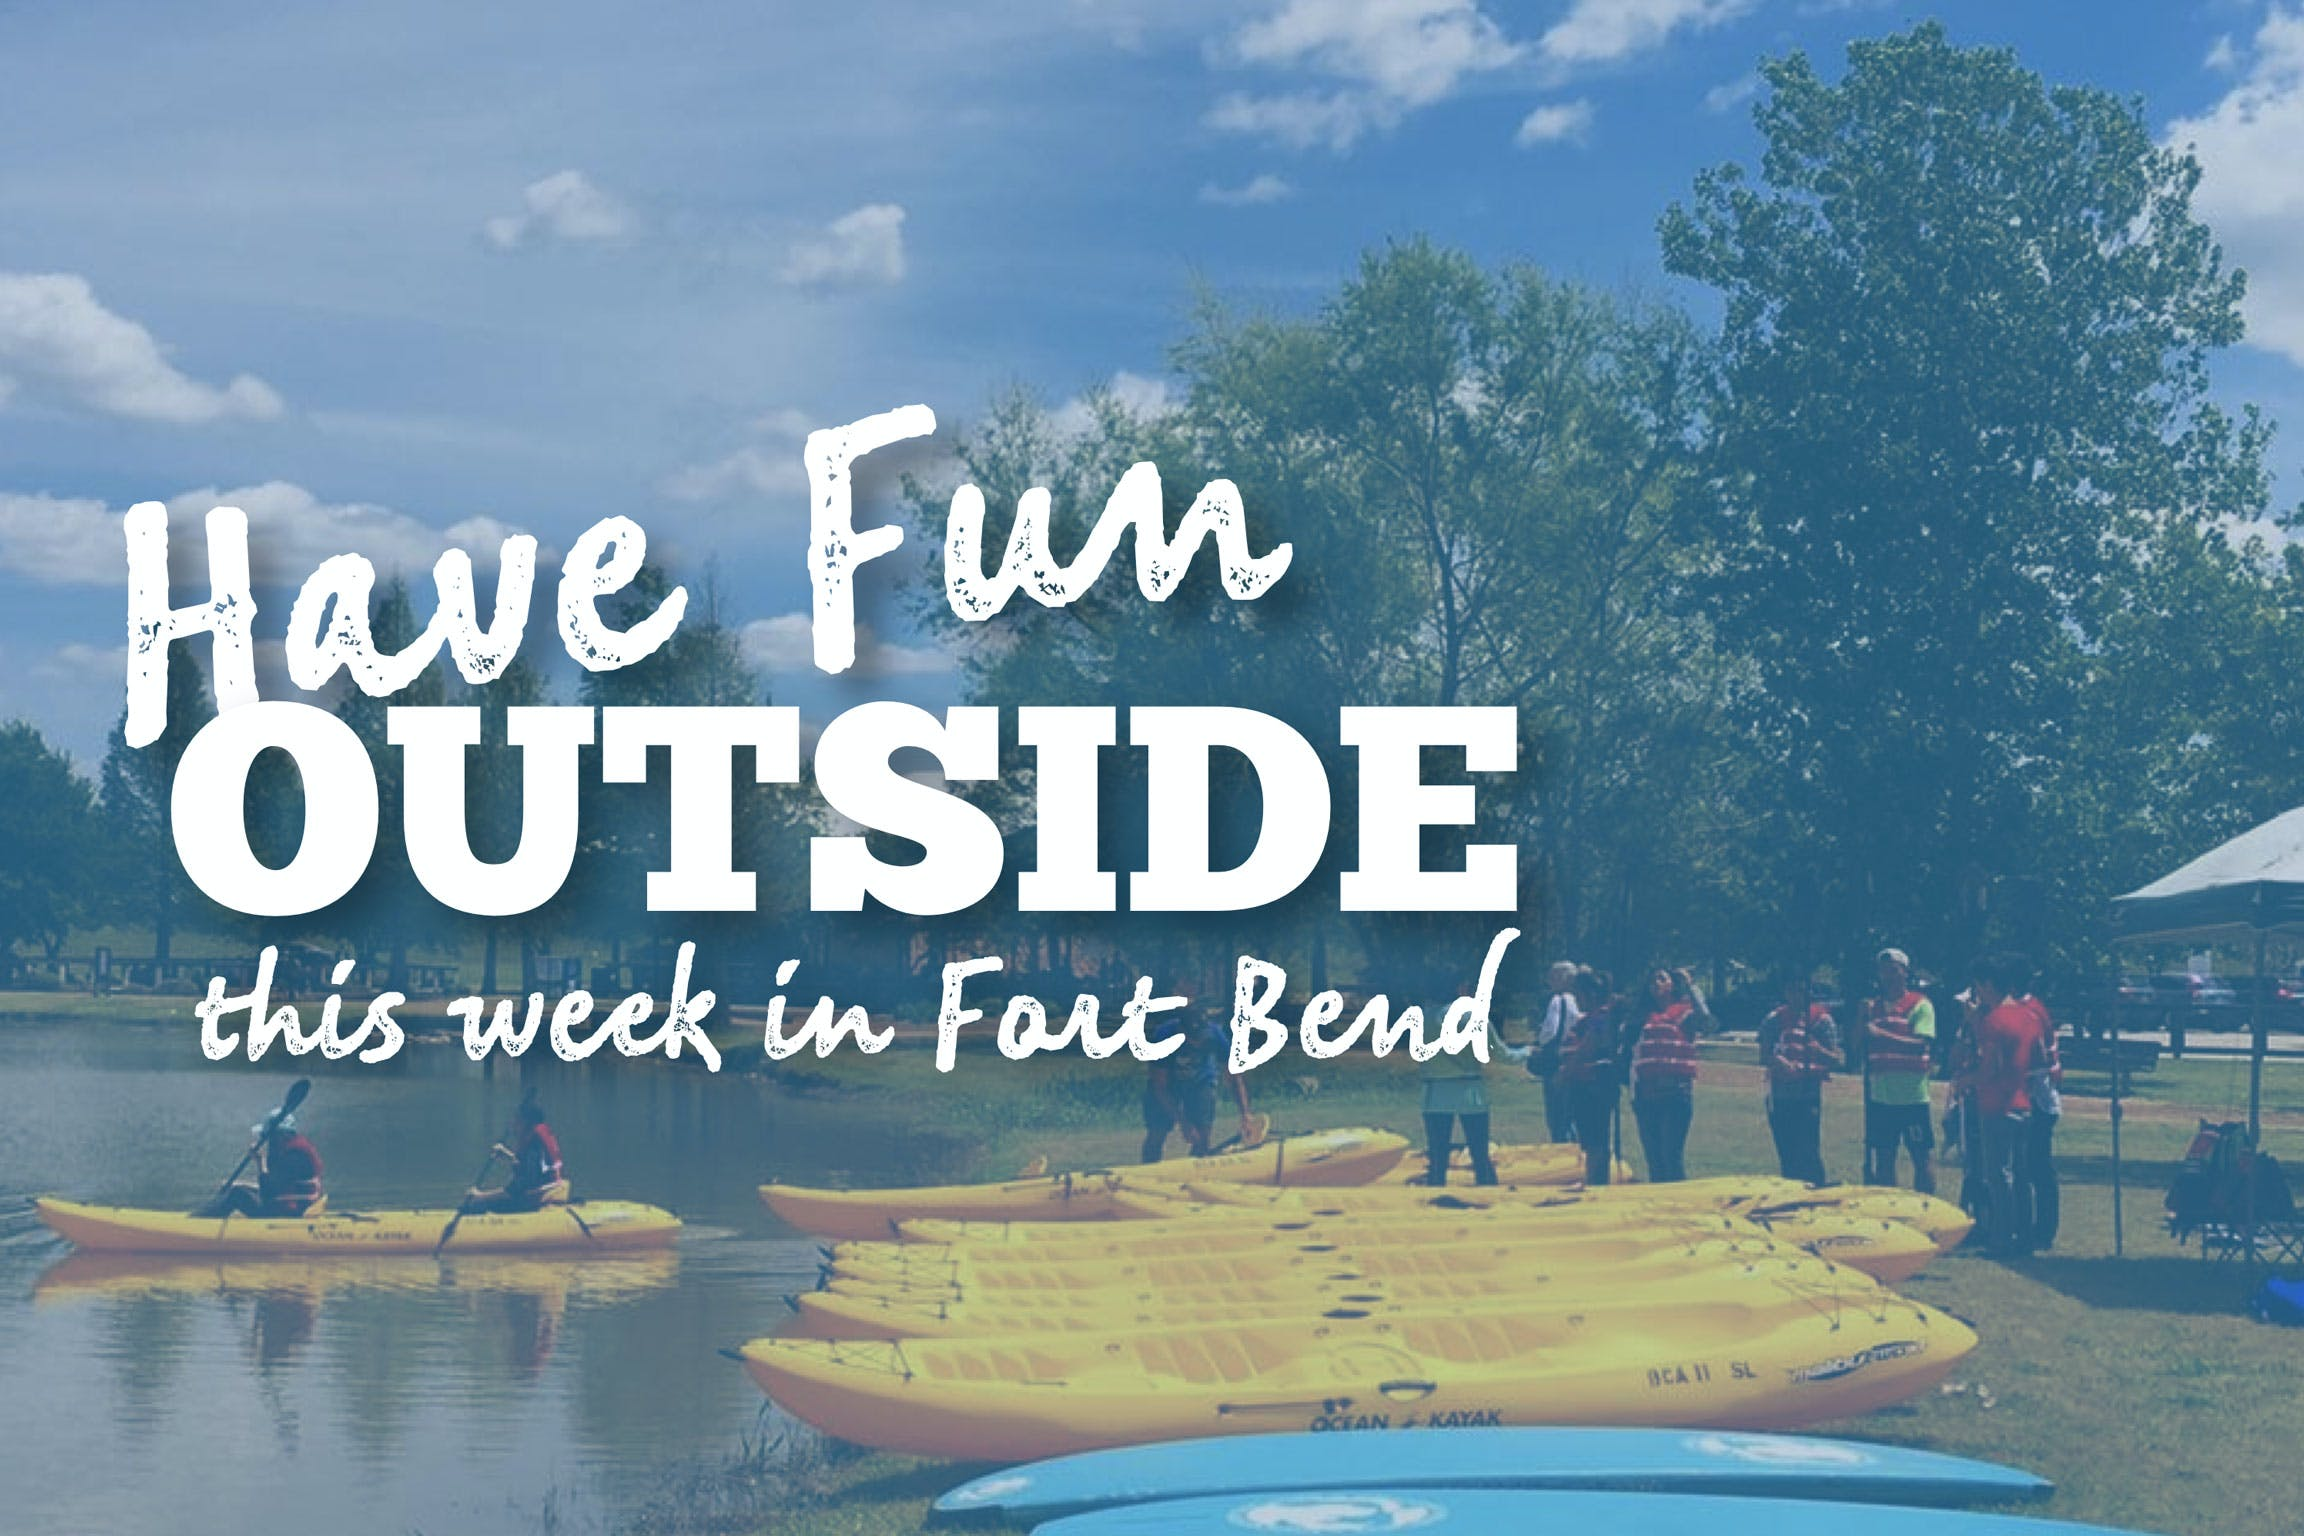 places-to-have-fun-outside-in-fort-bend-texas-this-week